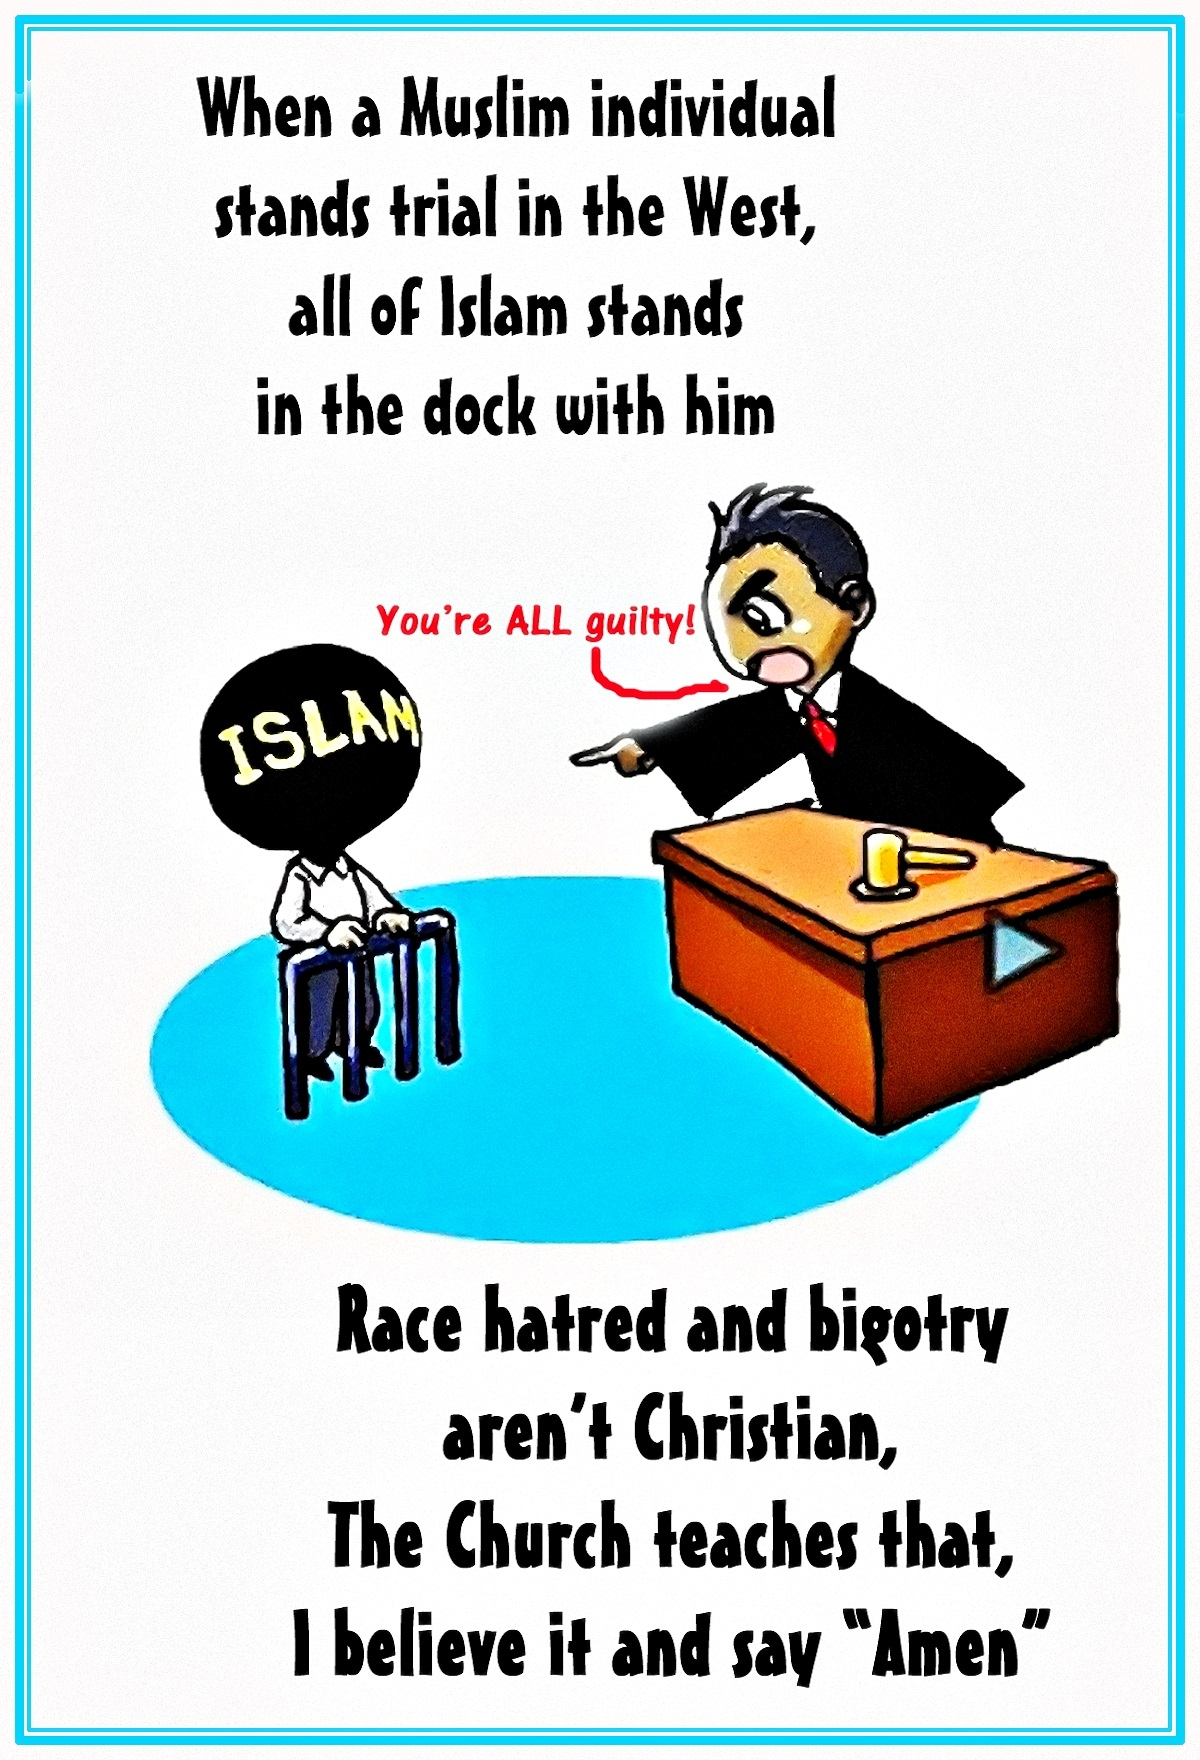 00 all of islam stands in the dock. 160416